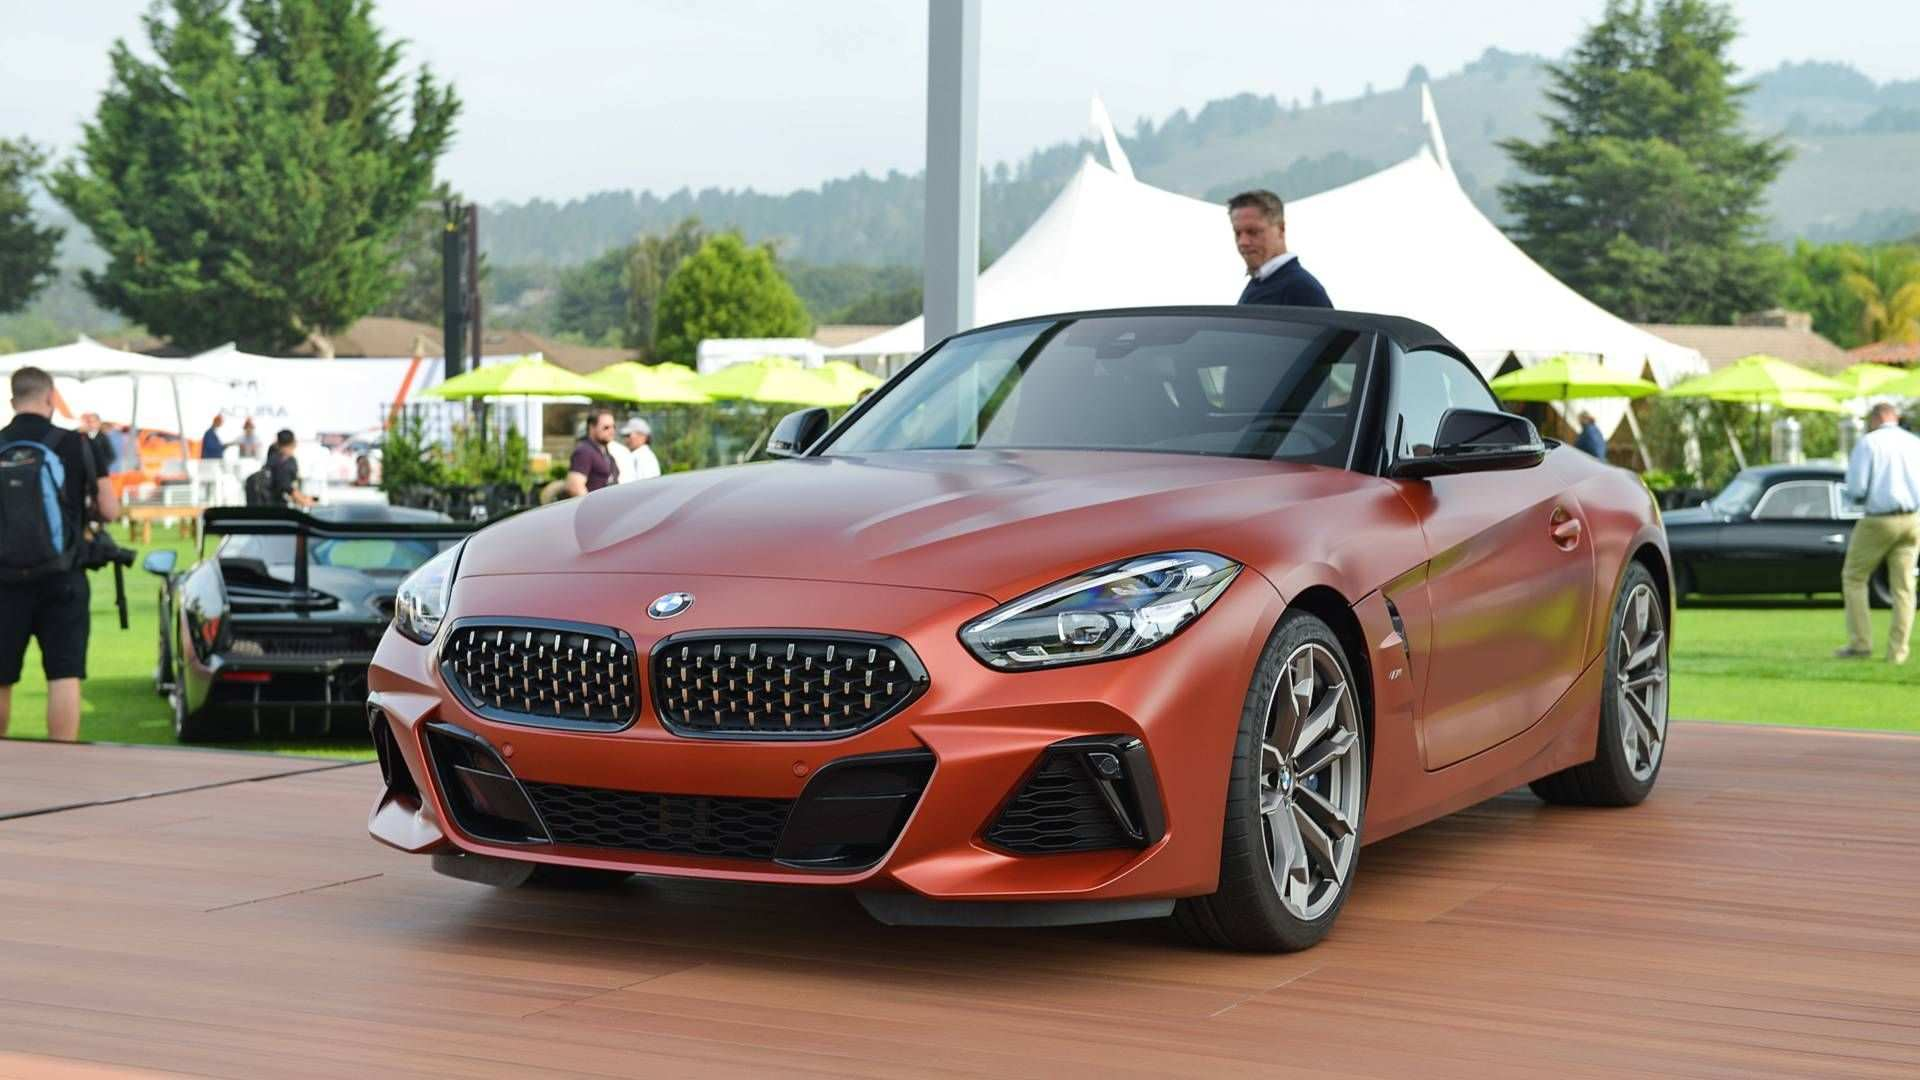 30 Concept of Best Bmw New Z4 2019 New Release Photos for Best Bmw New Z4 2019 New Release